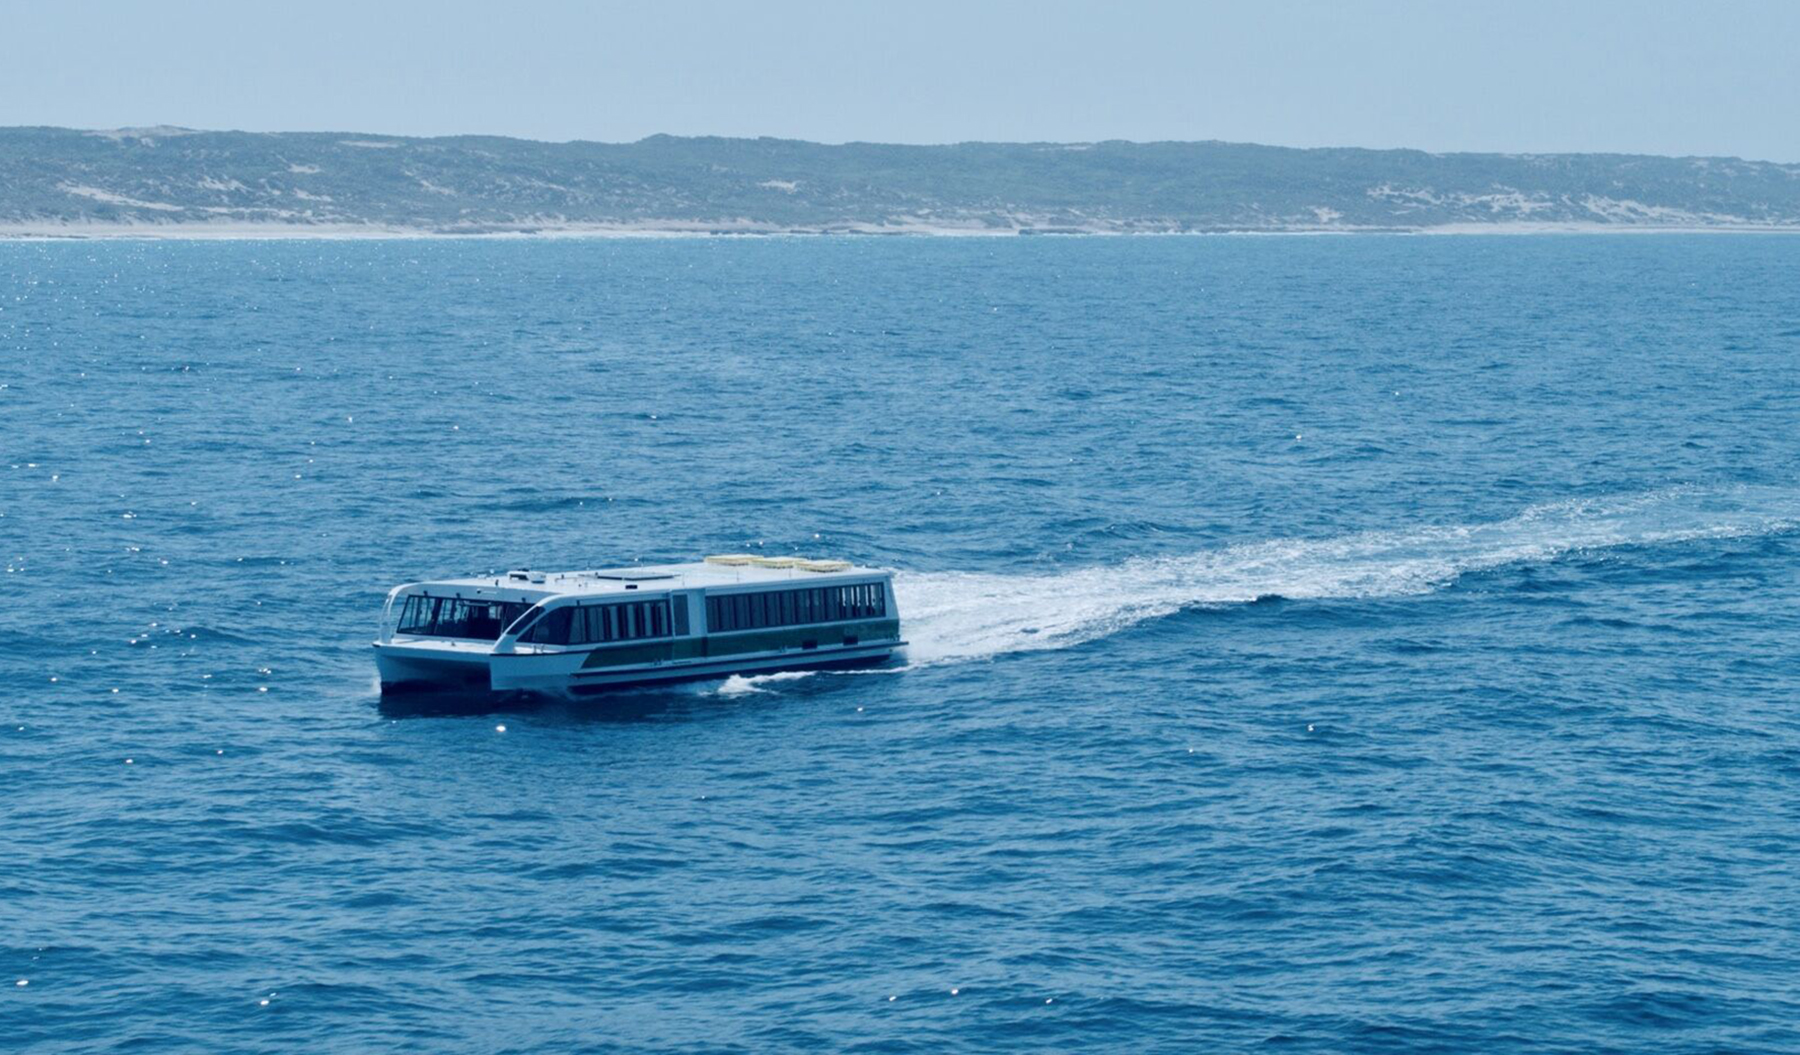 The 24 X 5.5-meter Cummins Powered MV Tricia on sea trials